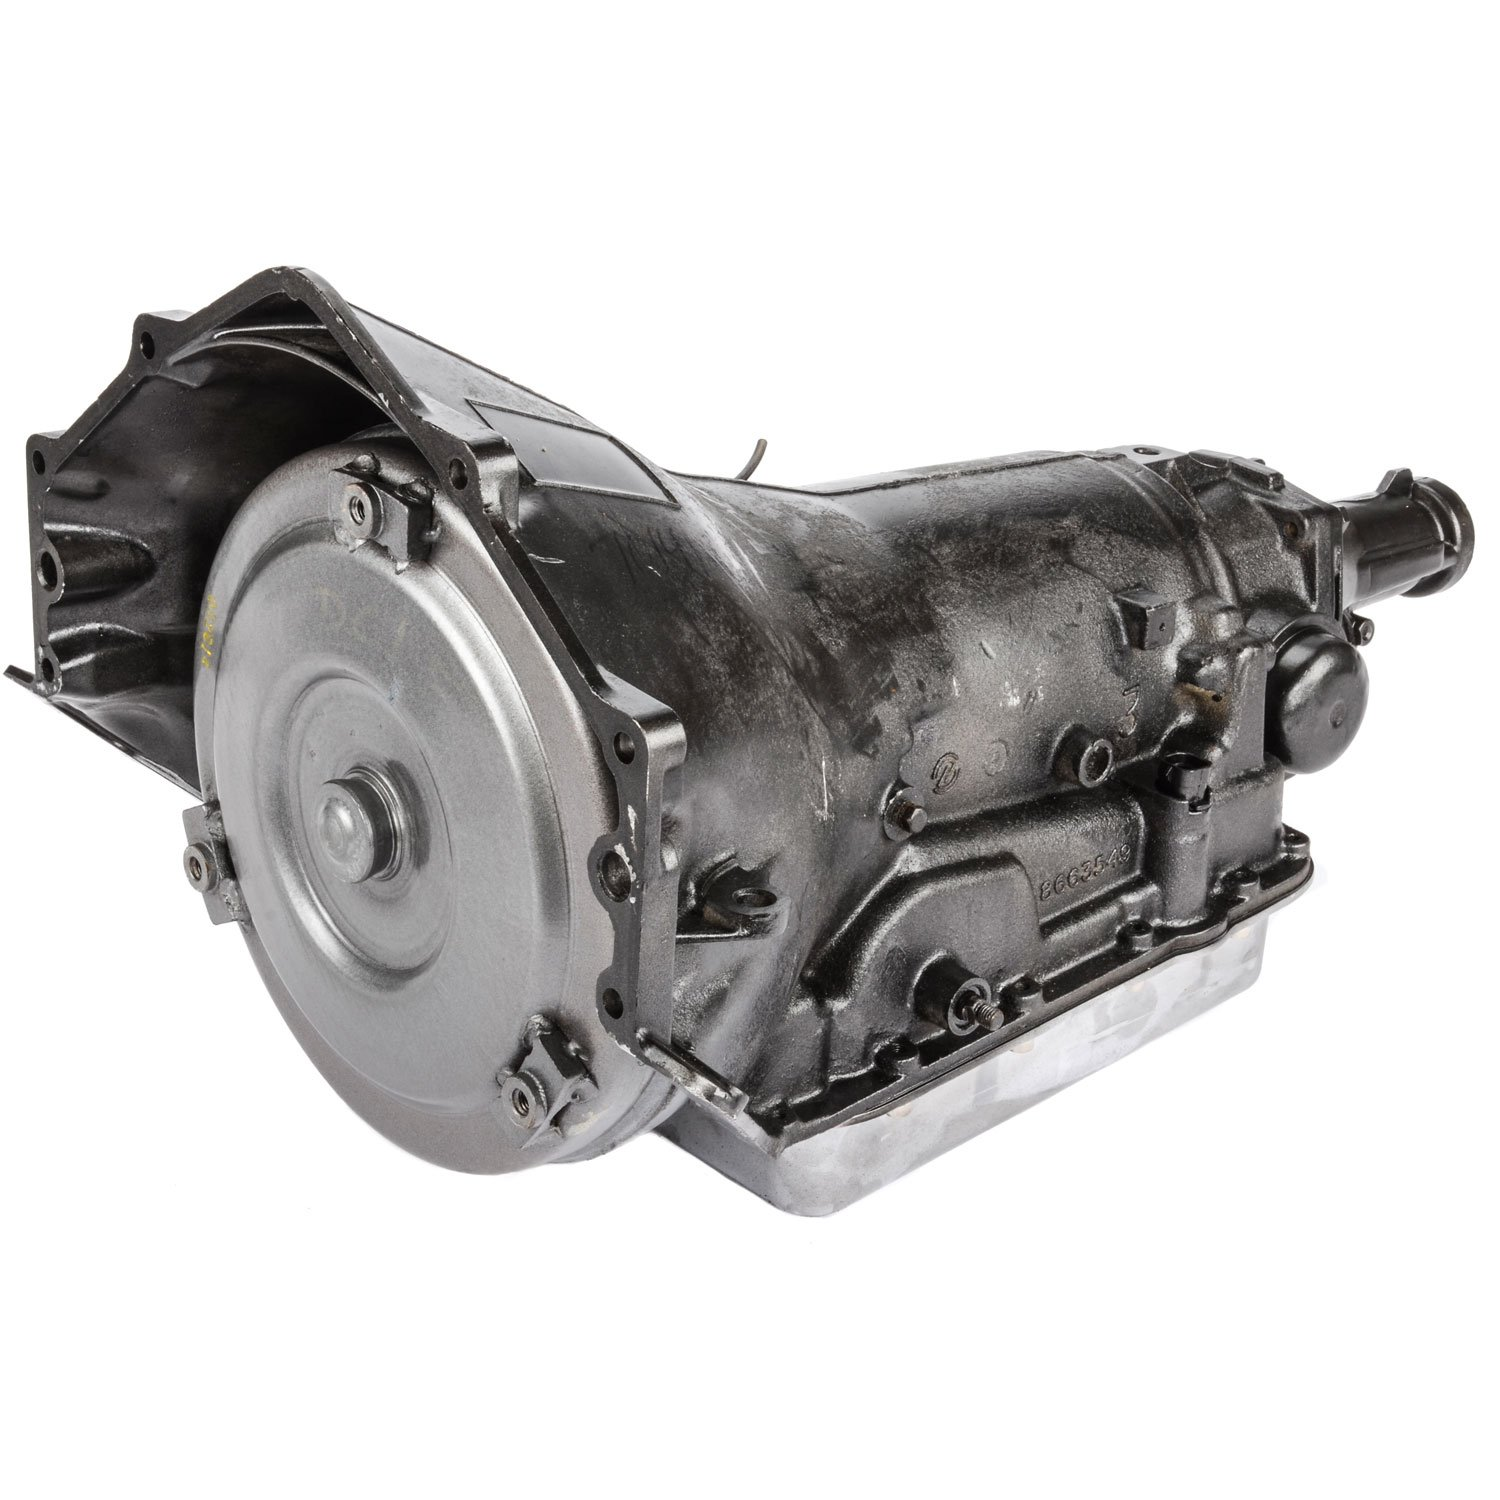 Performance Automatic PA70104 - Performance Automatic Racing GM Street/Strip Transmissions